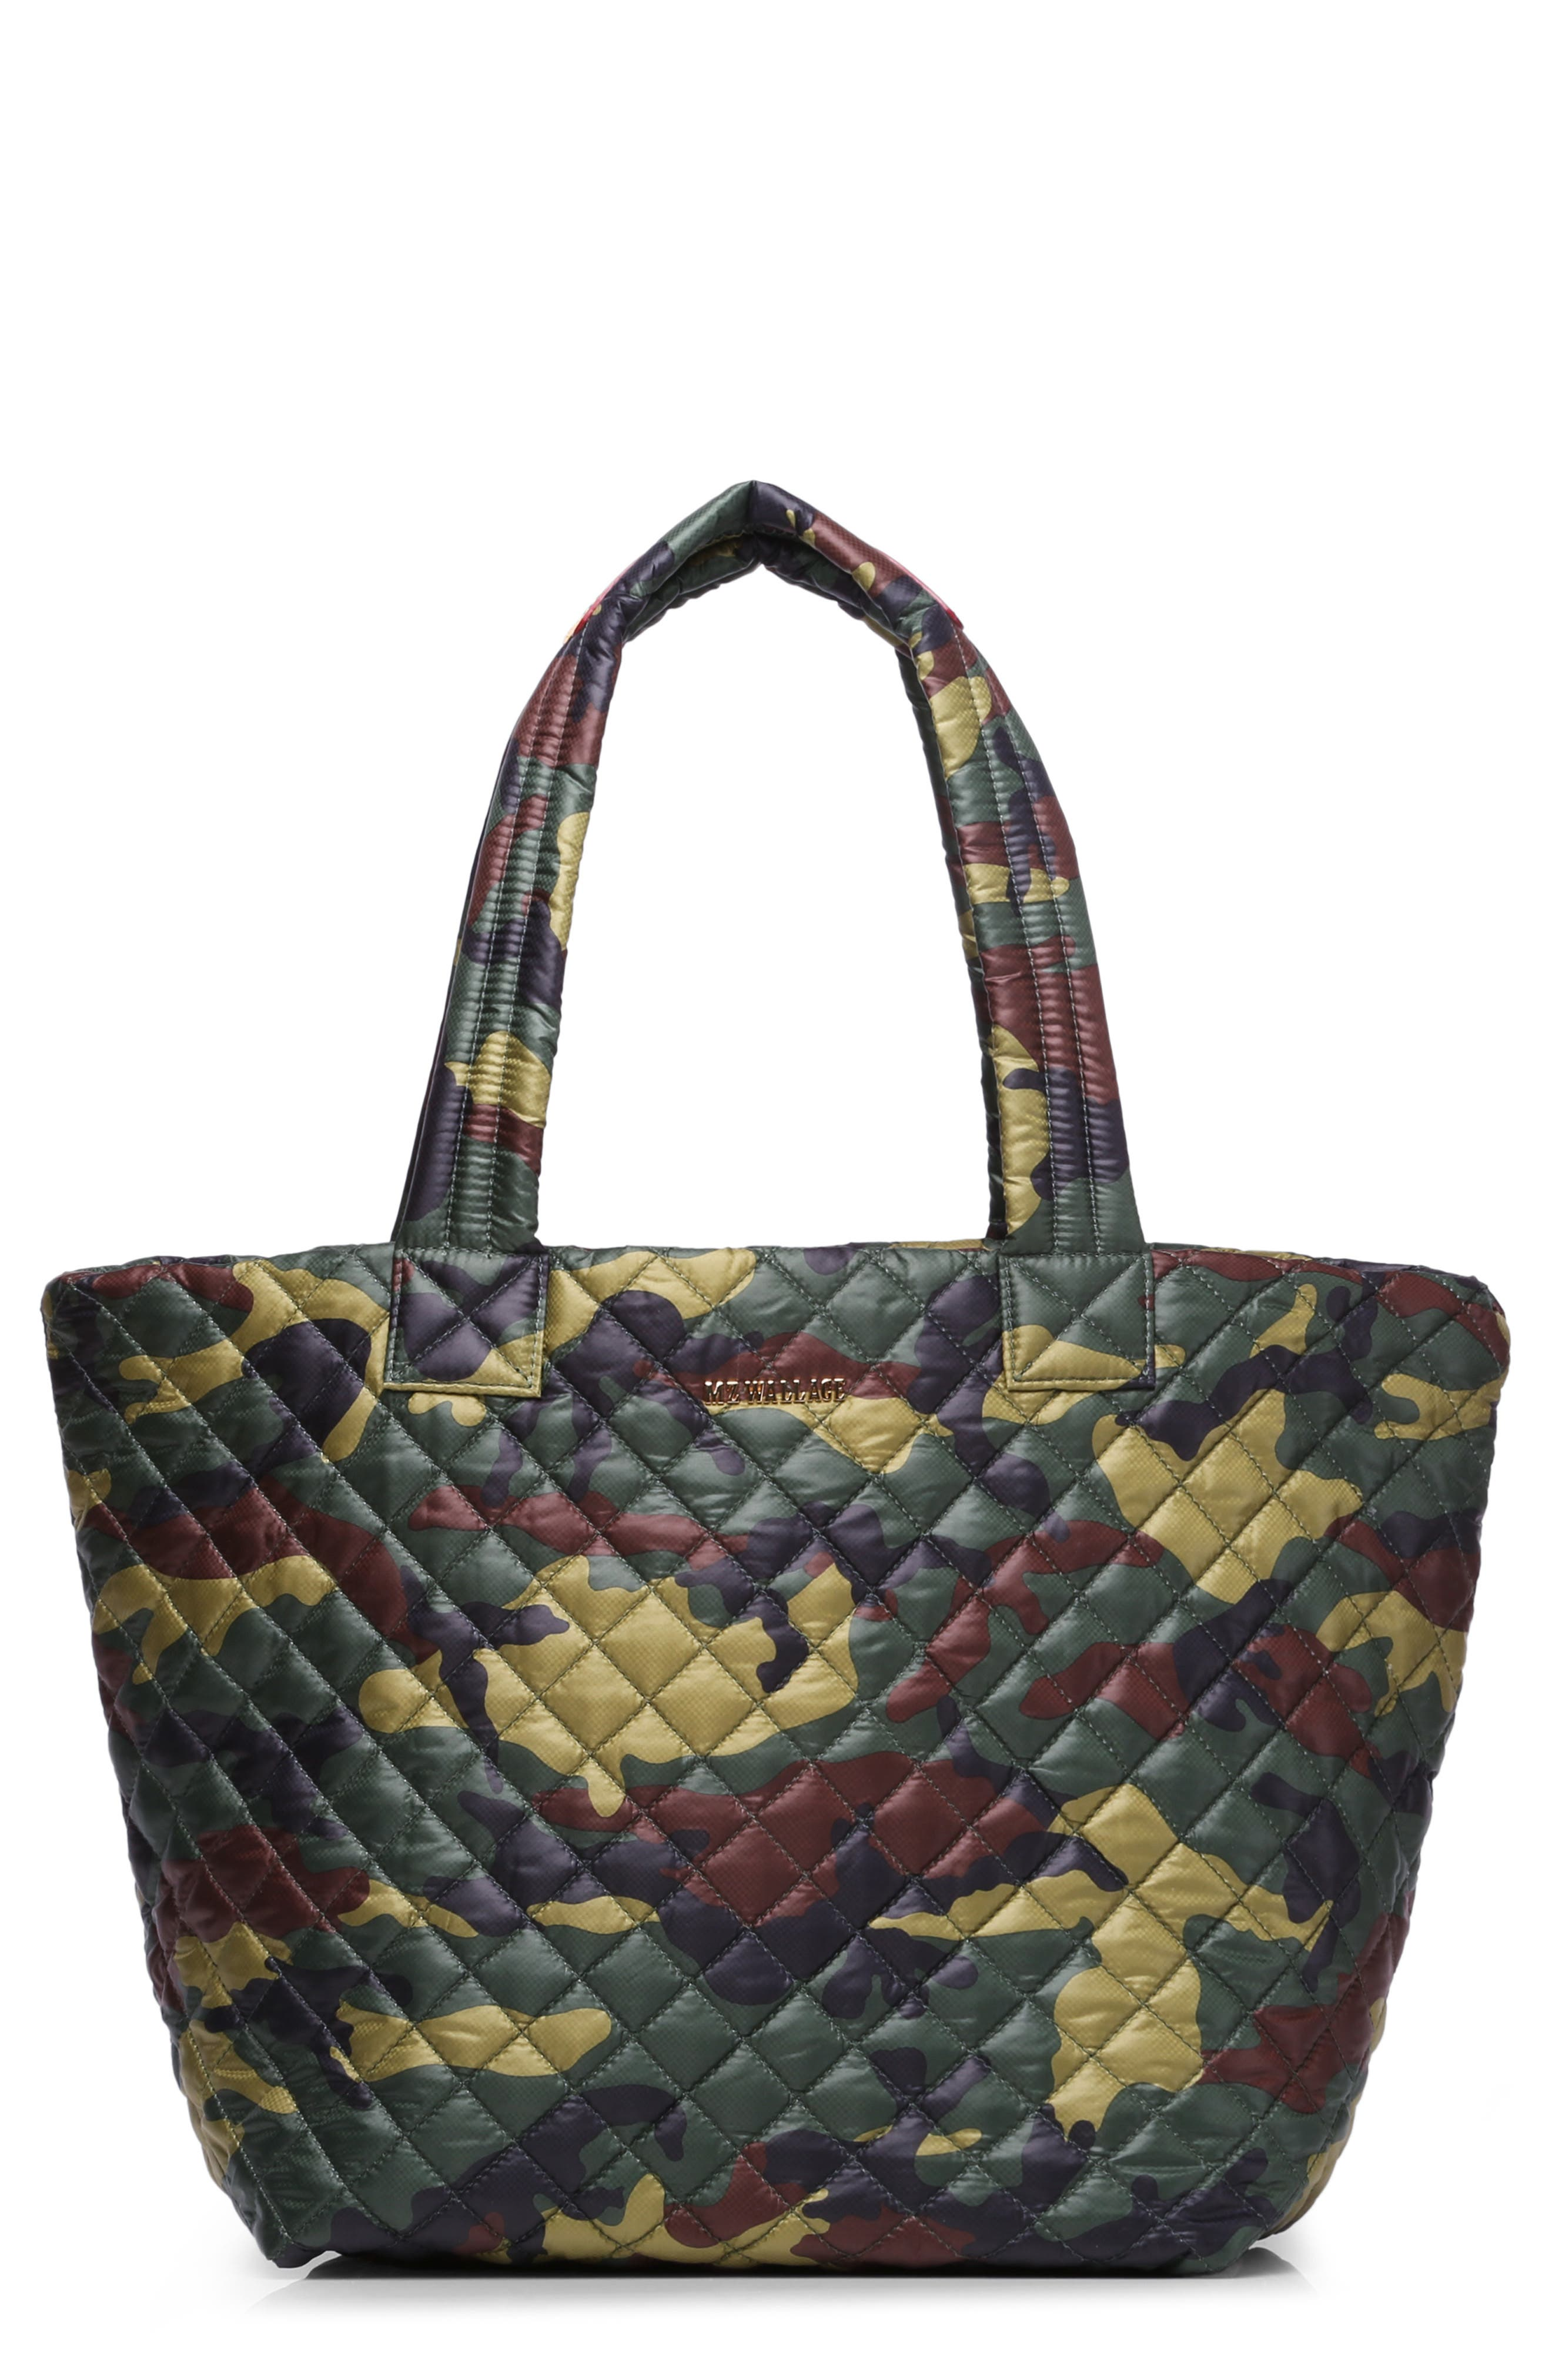 Medium Metro Tote,                             Main thumbnail 1, color,                             300